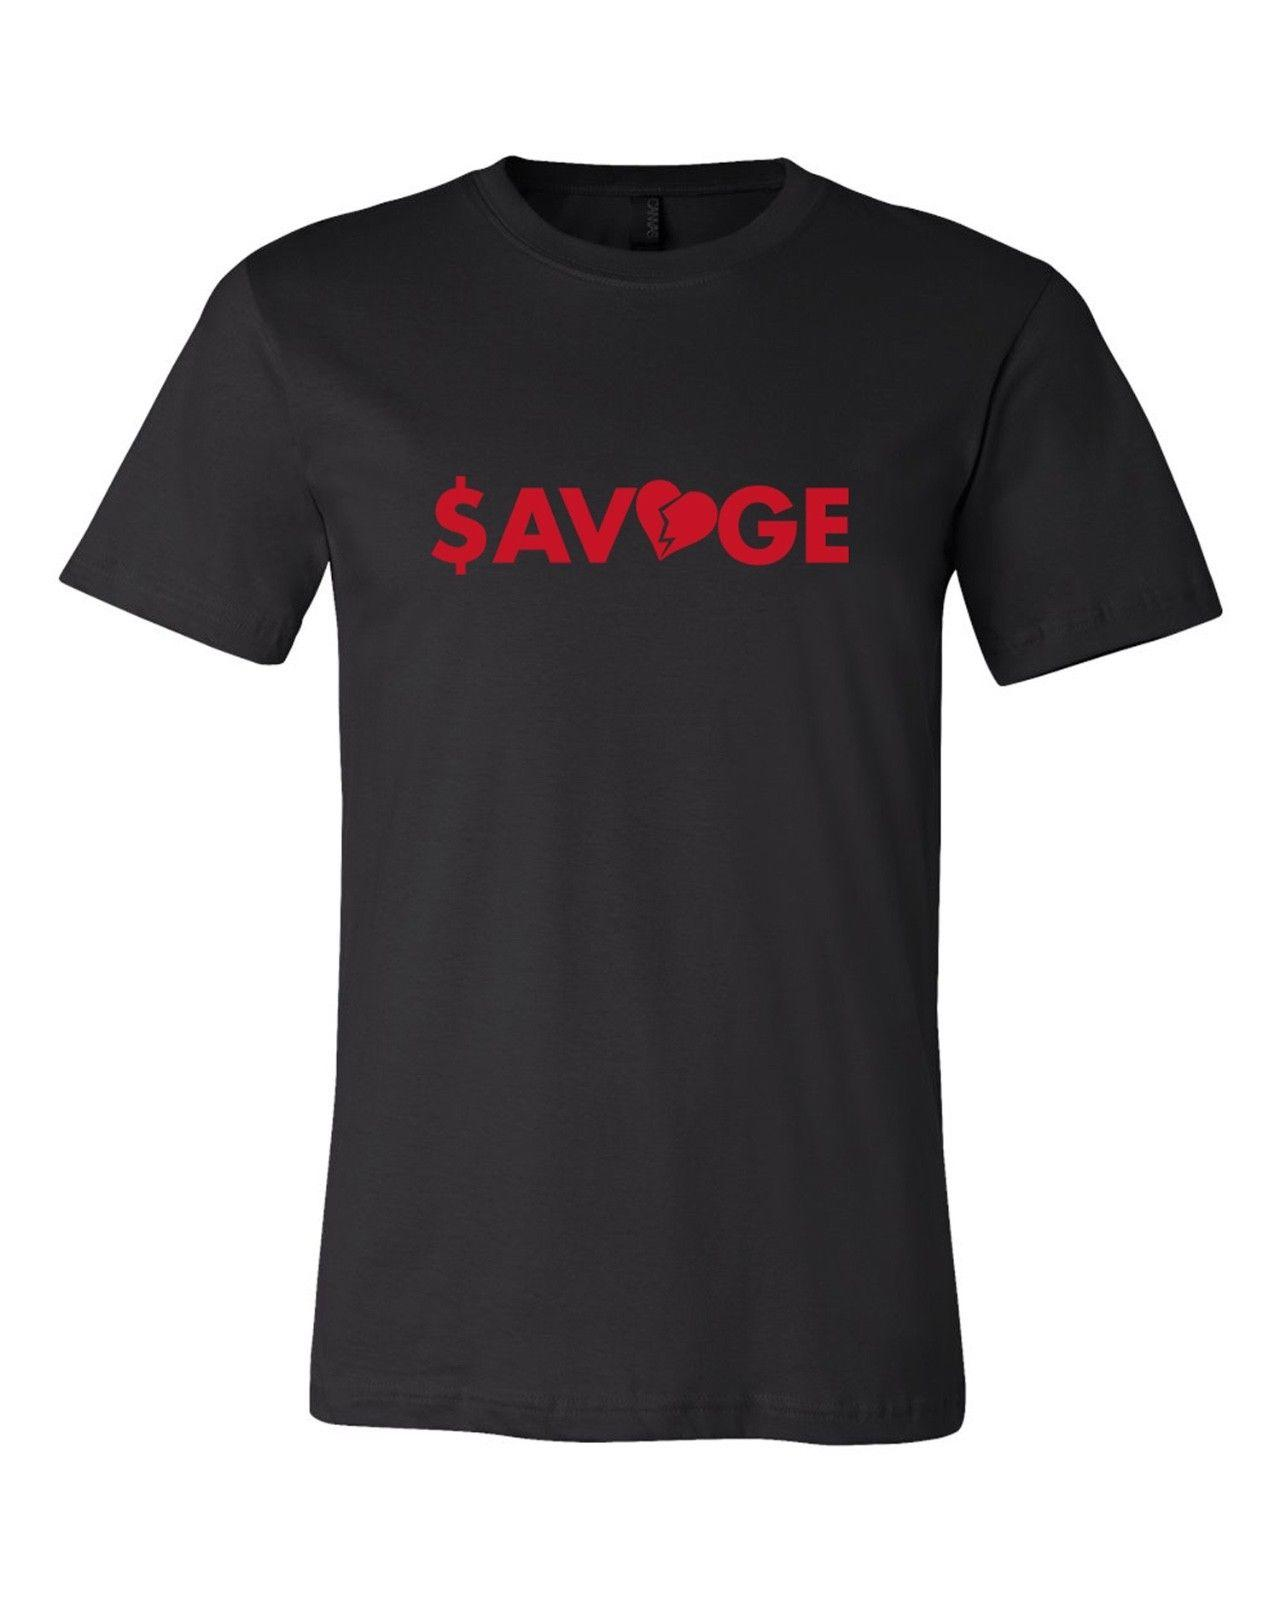 712654d8591 SAVAGE T SHIRT IN BLACK STREETWEAR FASHION FLU GAME NEW 2018 Short Sleeve,  O Neck 100% Cotton, Print Mens Summer T Shirts Sale Novelty Shirts From ...